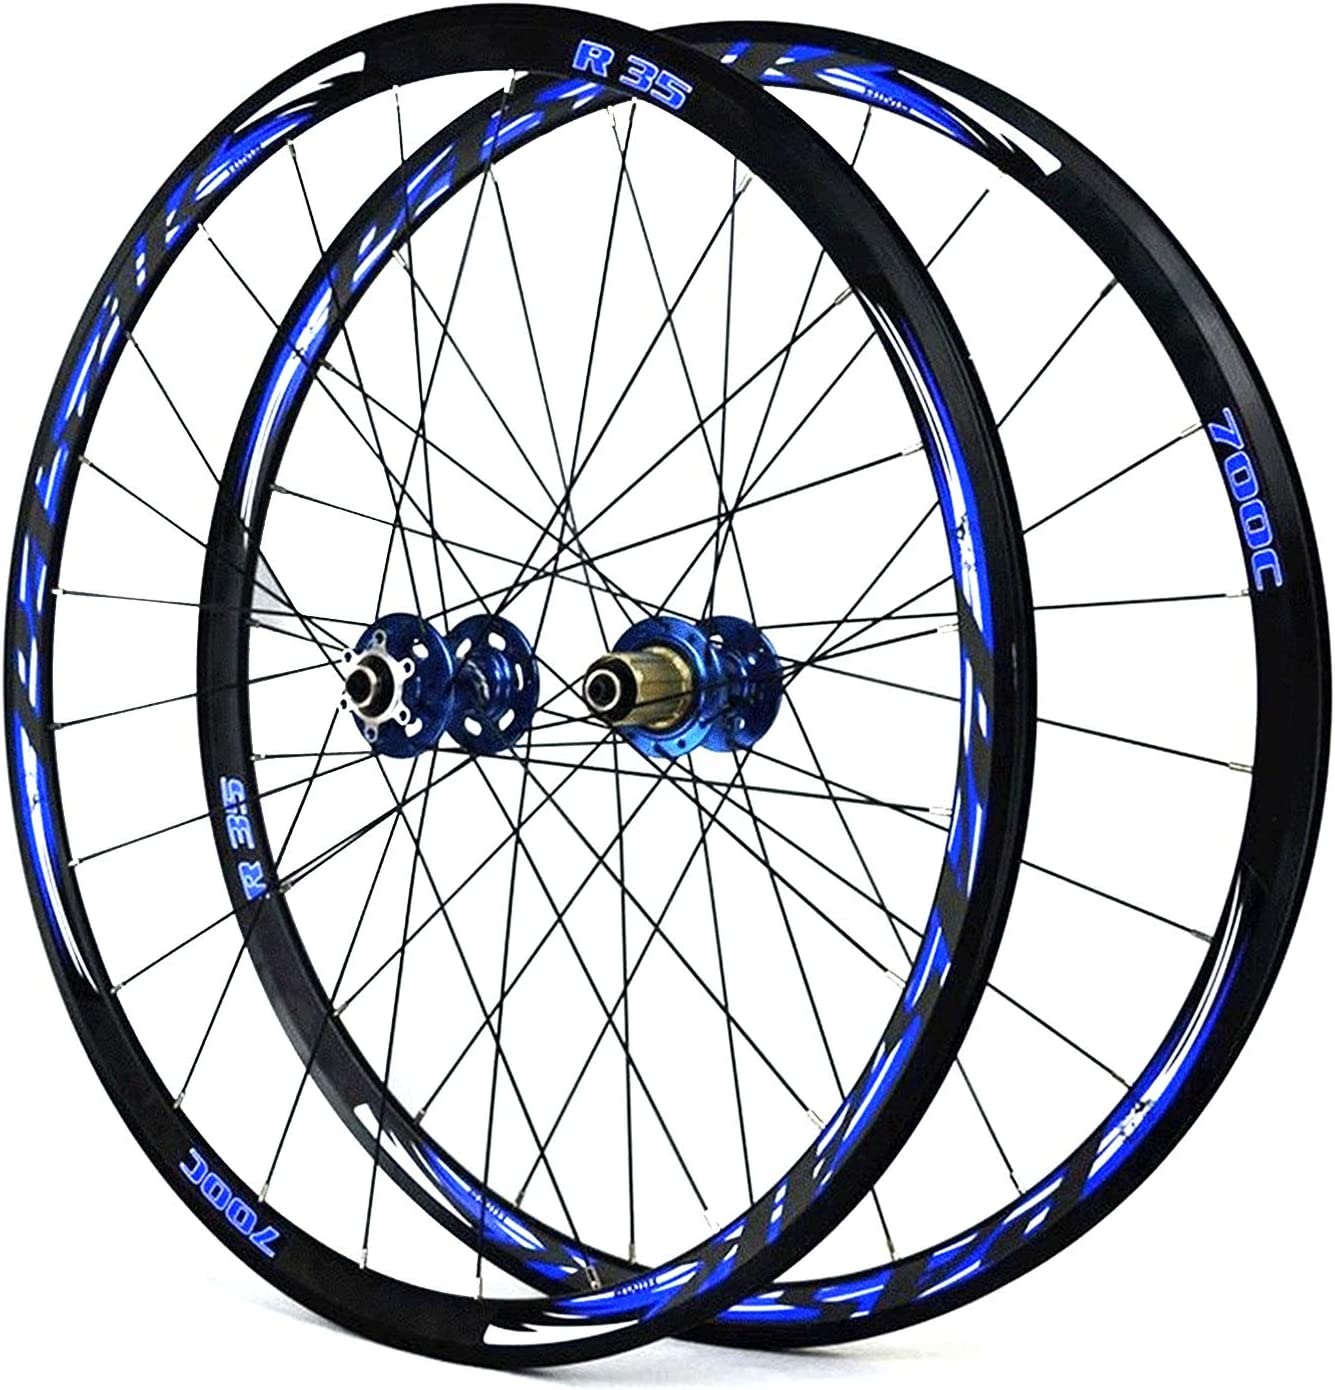 GXFWJD Bicycle Wheelset Road Bike Alloy 67% OFF of fixed price Ri Direct store 700c